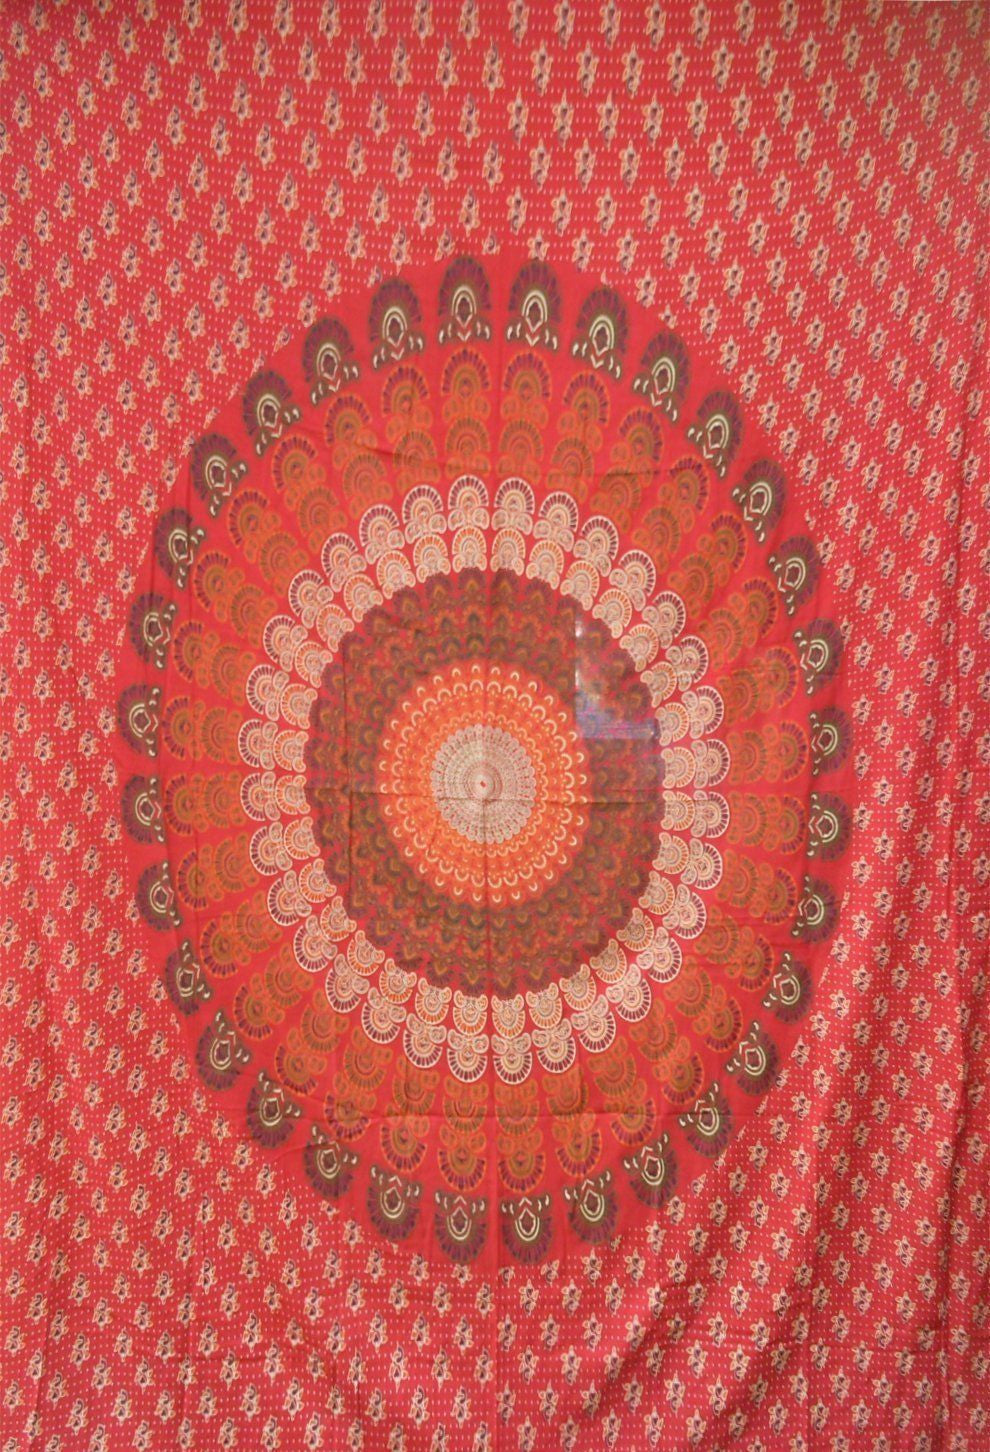 RED White Mandala WOVEN BEDSPREAD BED SOFA Chair THROW COVER WALL HANGING  Boho